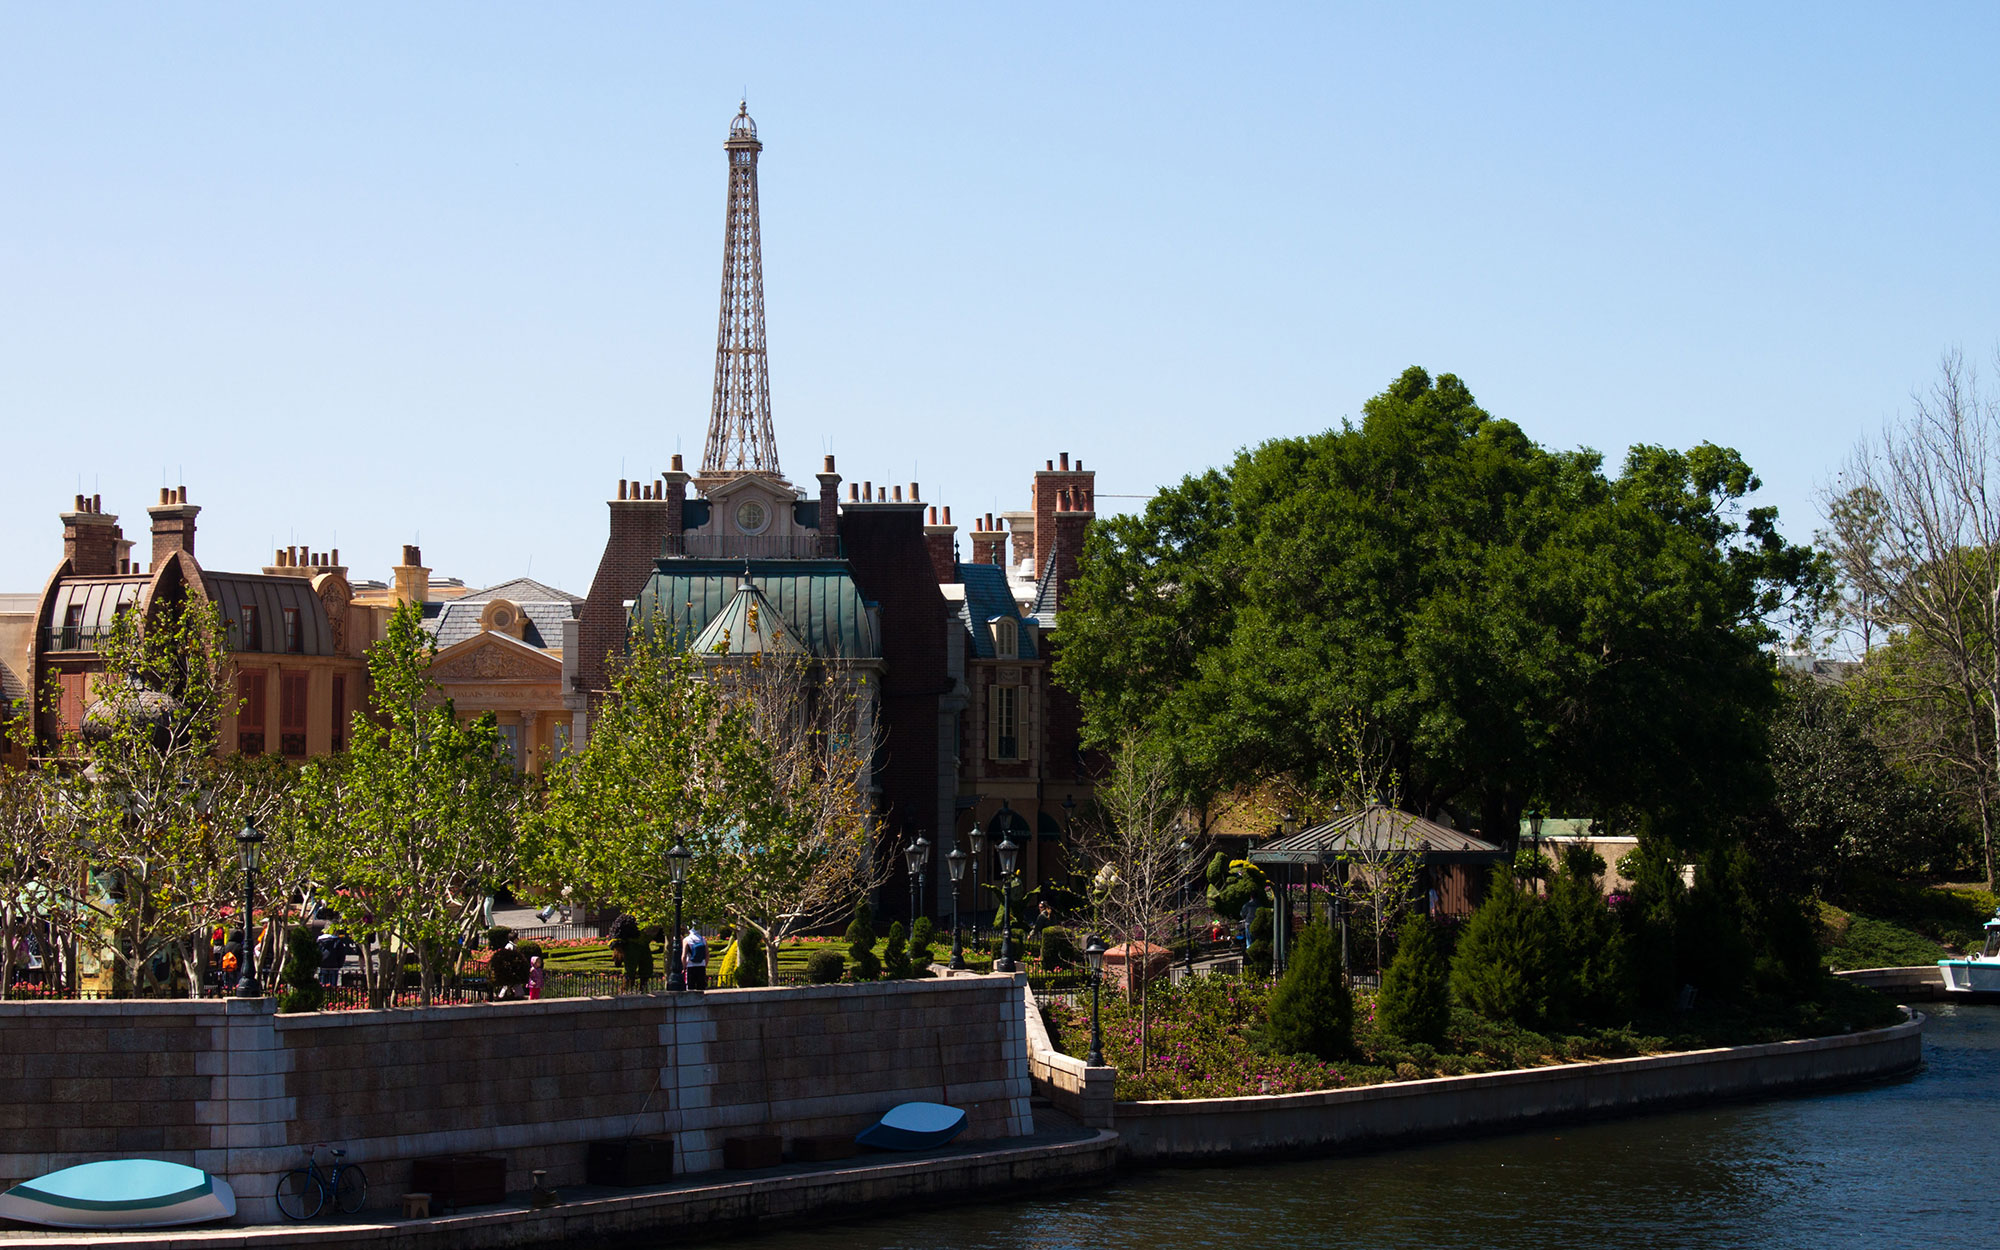 Drinking Around the World at Disney's Epcot: France